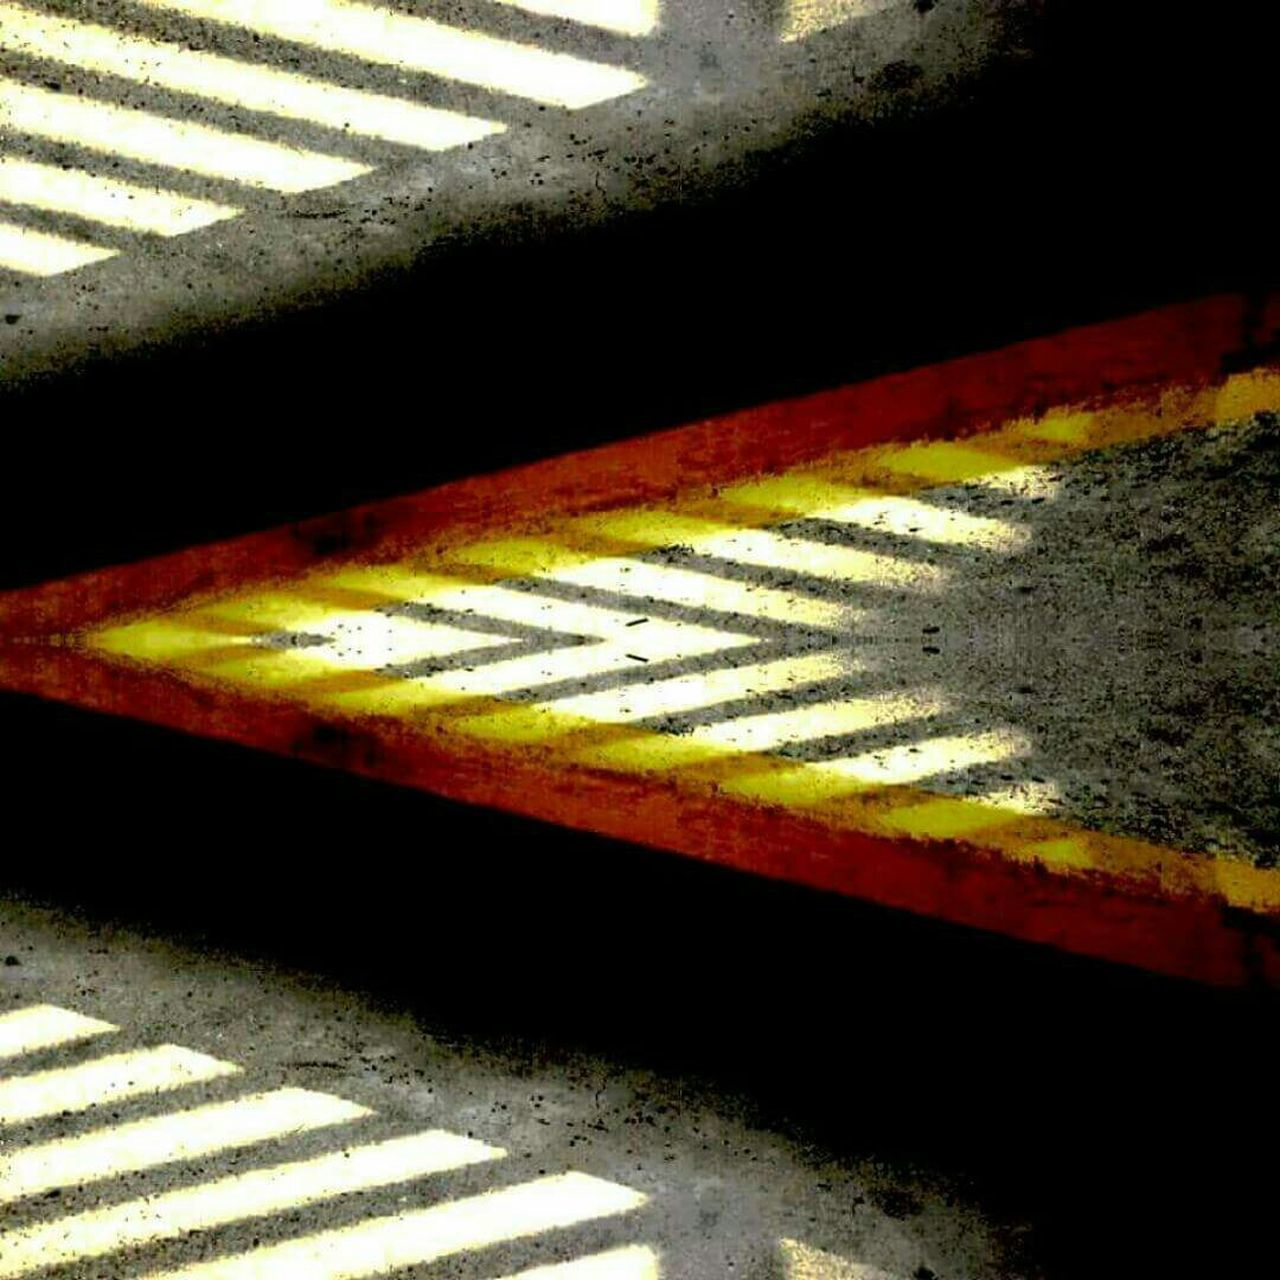 striped, yellow, textured, multi colored, no people, paint, black color, day, road, backgrounds, outdoors, line, close-up